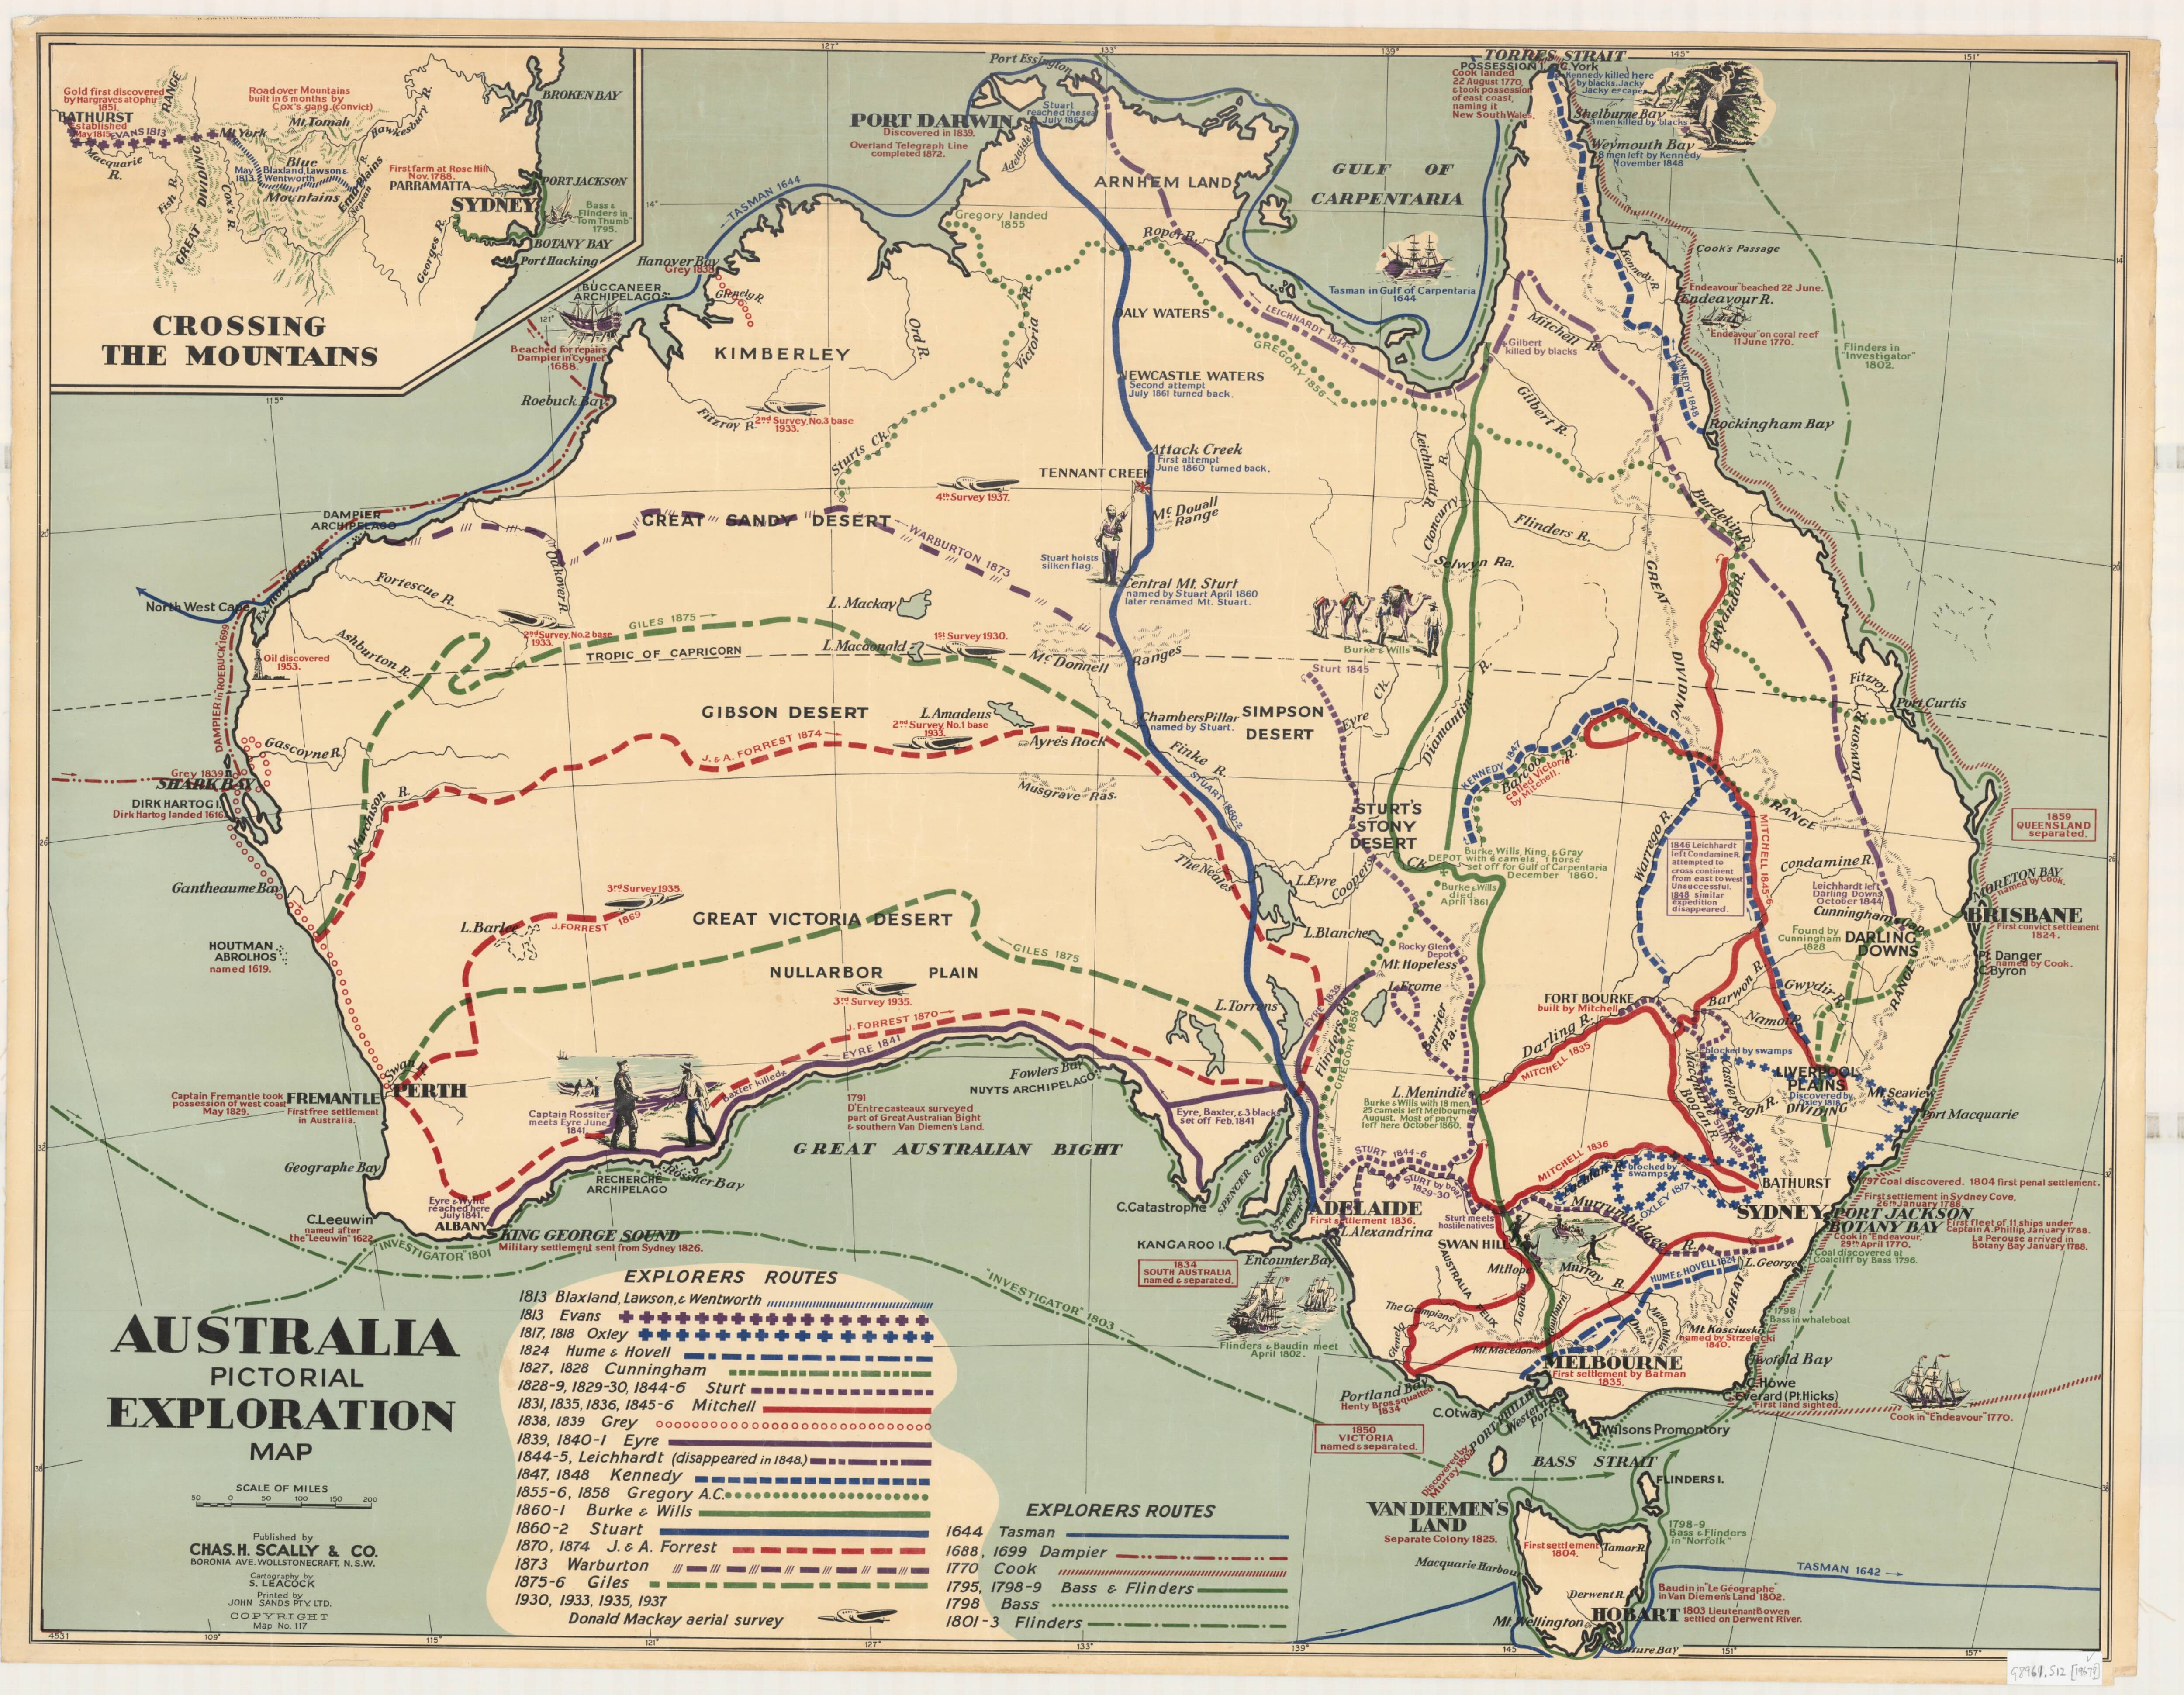 An old map showing routes across Australia.